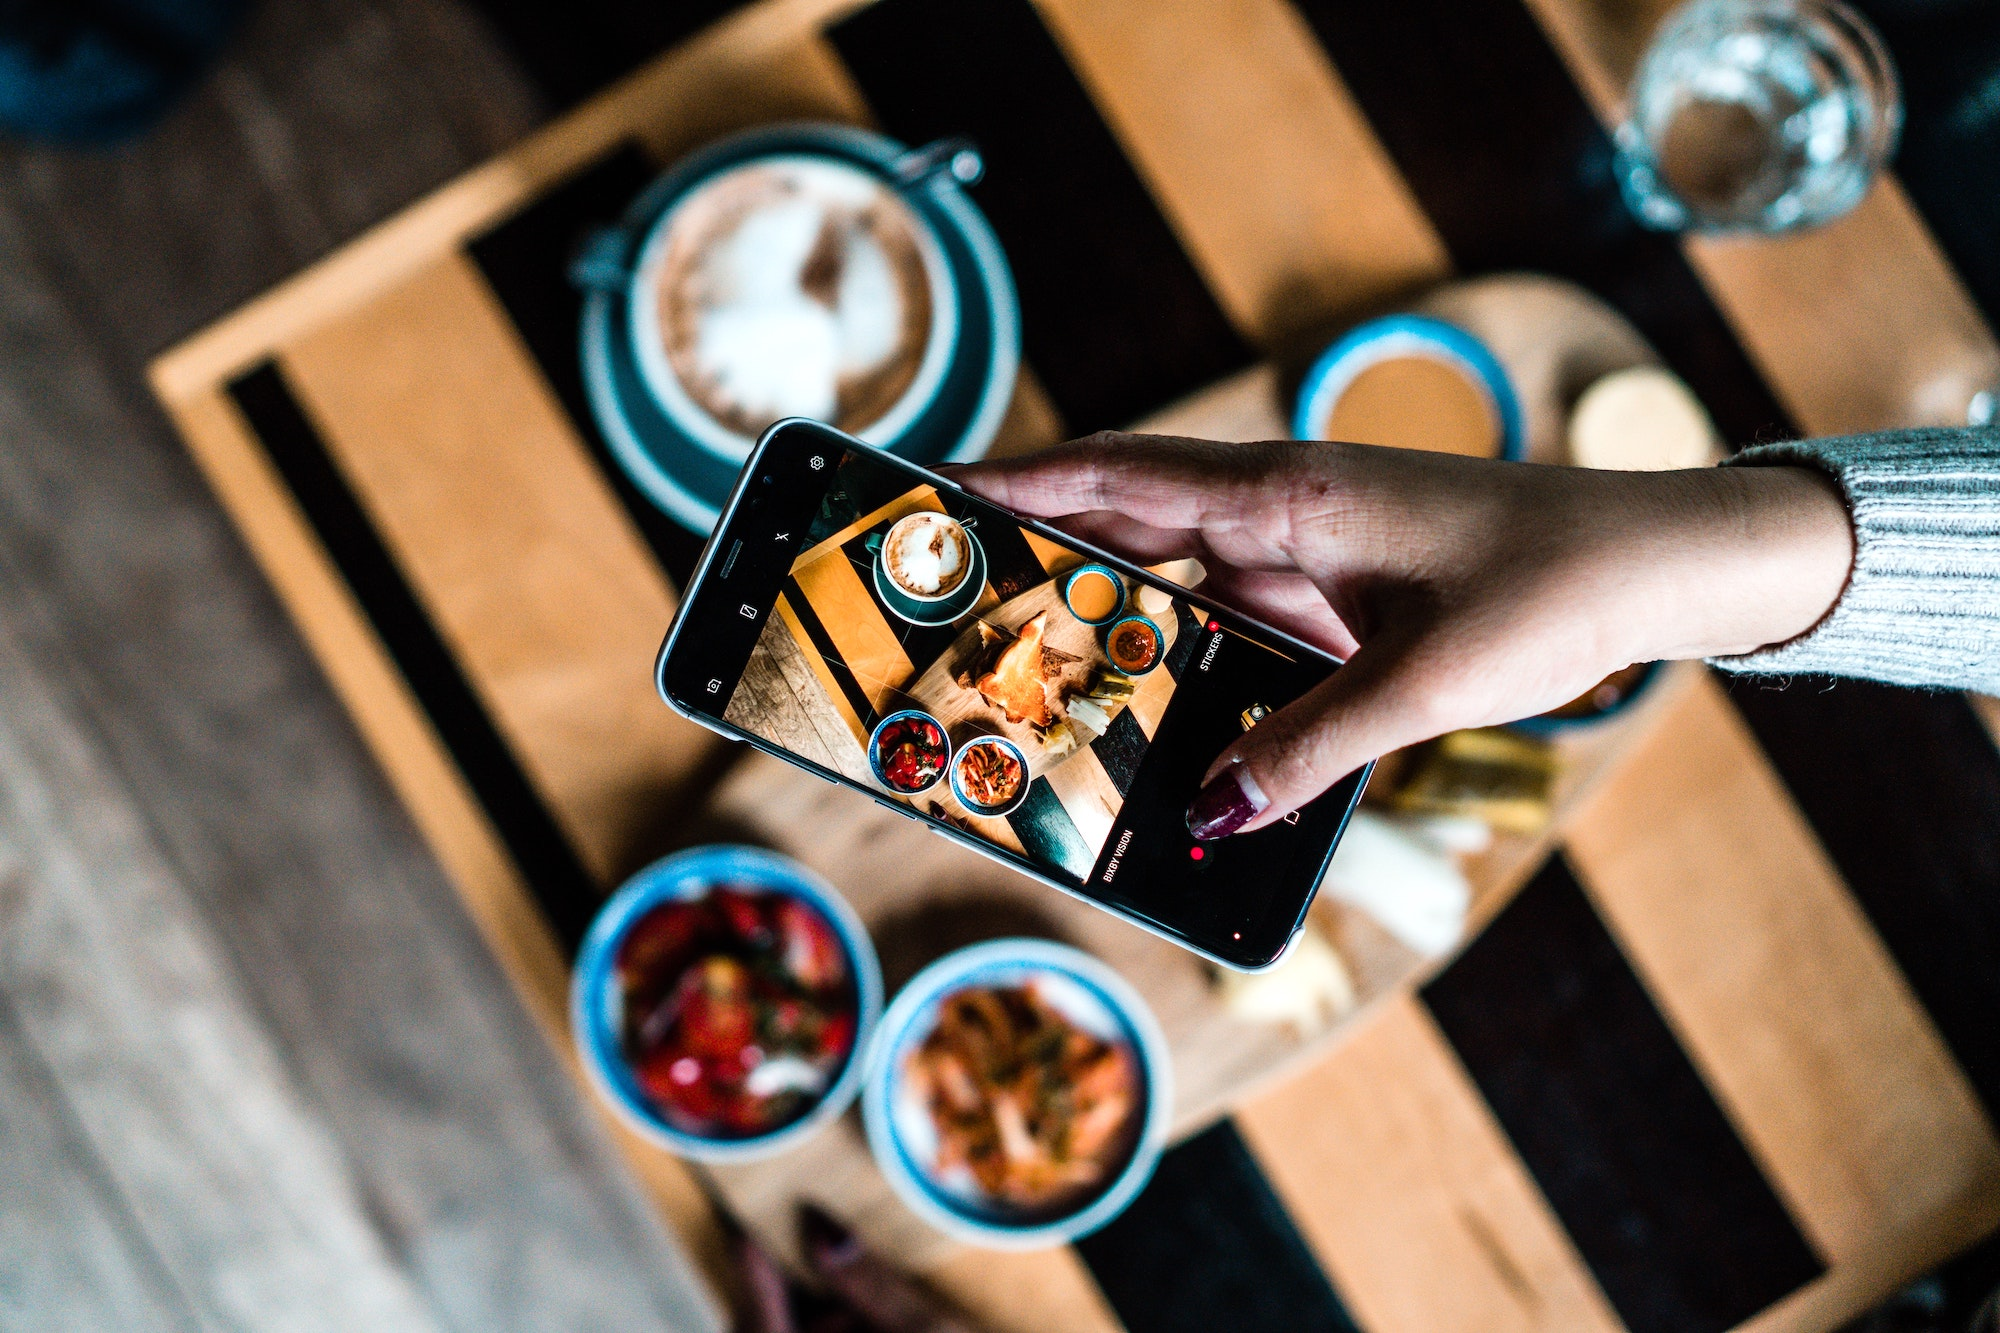 Why are people more religious about posting their food photos on Instagram?